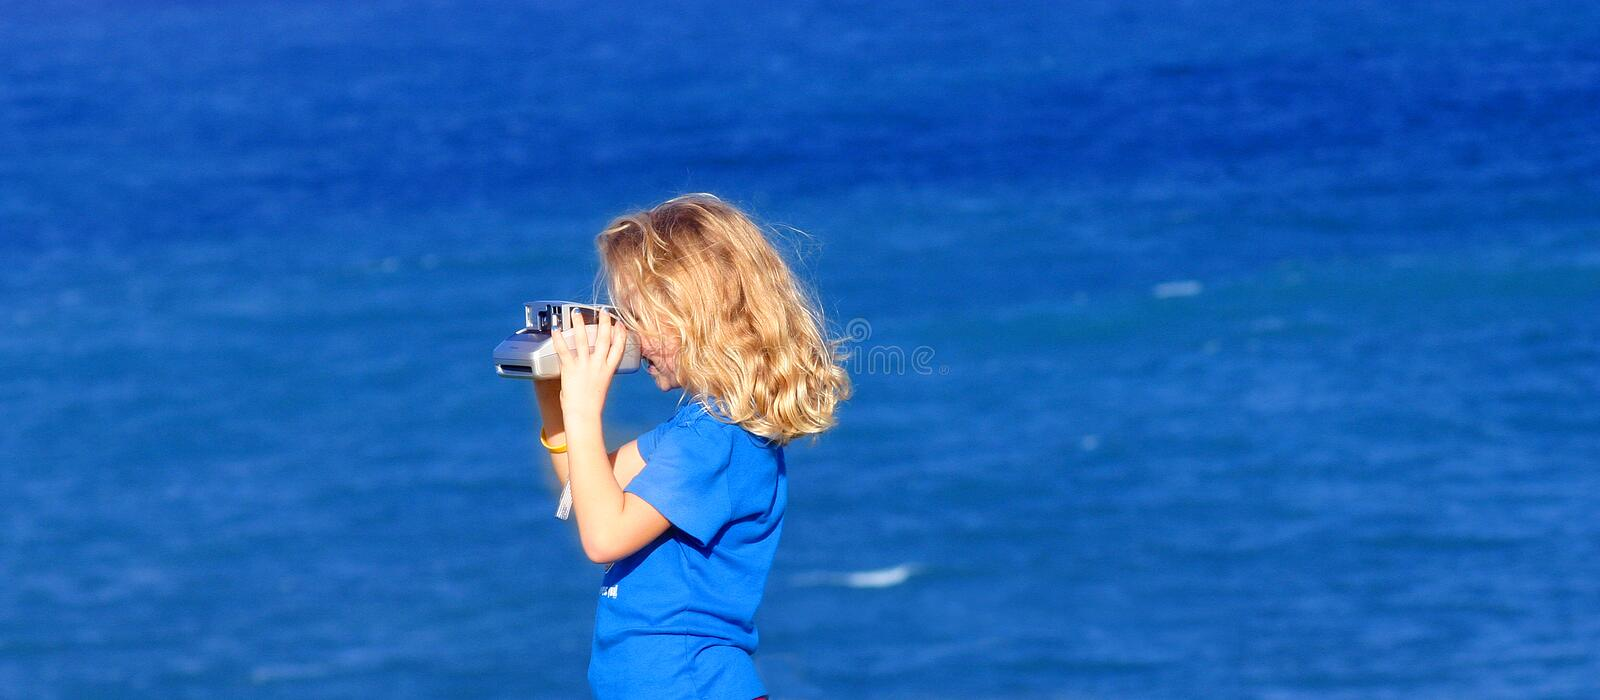 Download Taking pictures stock image. Image of happy, water, play - 55115